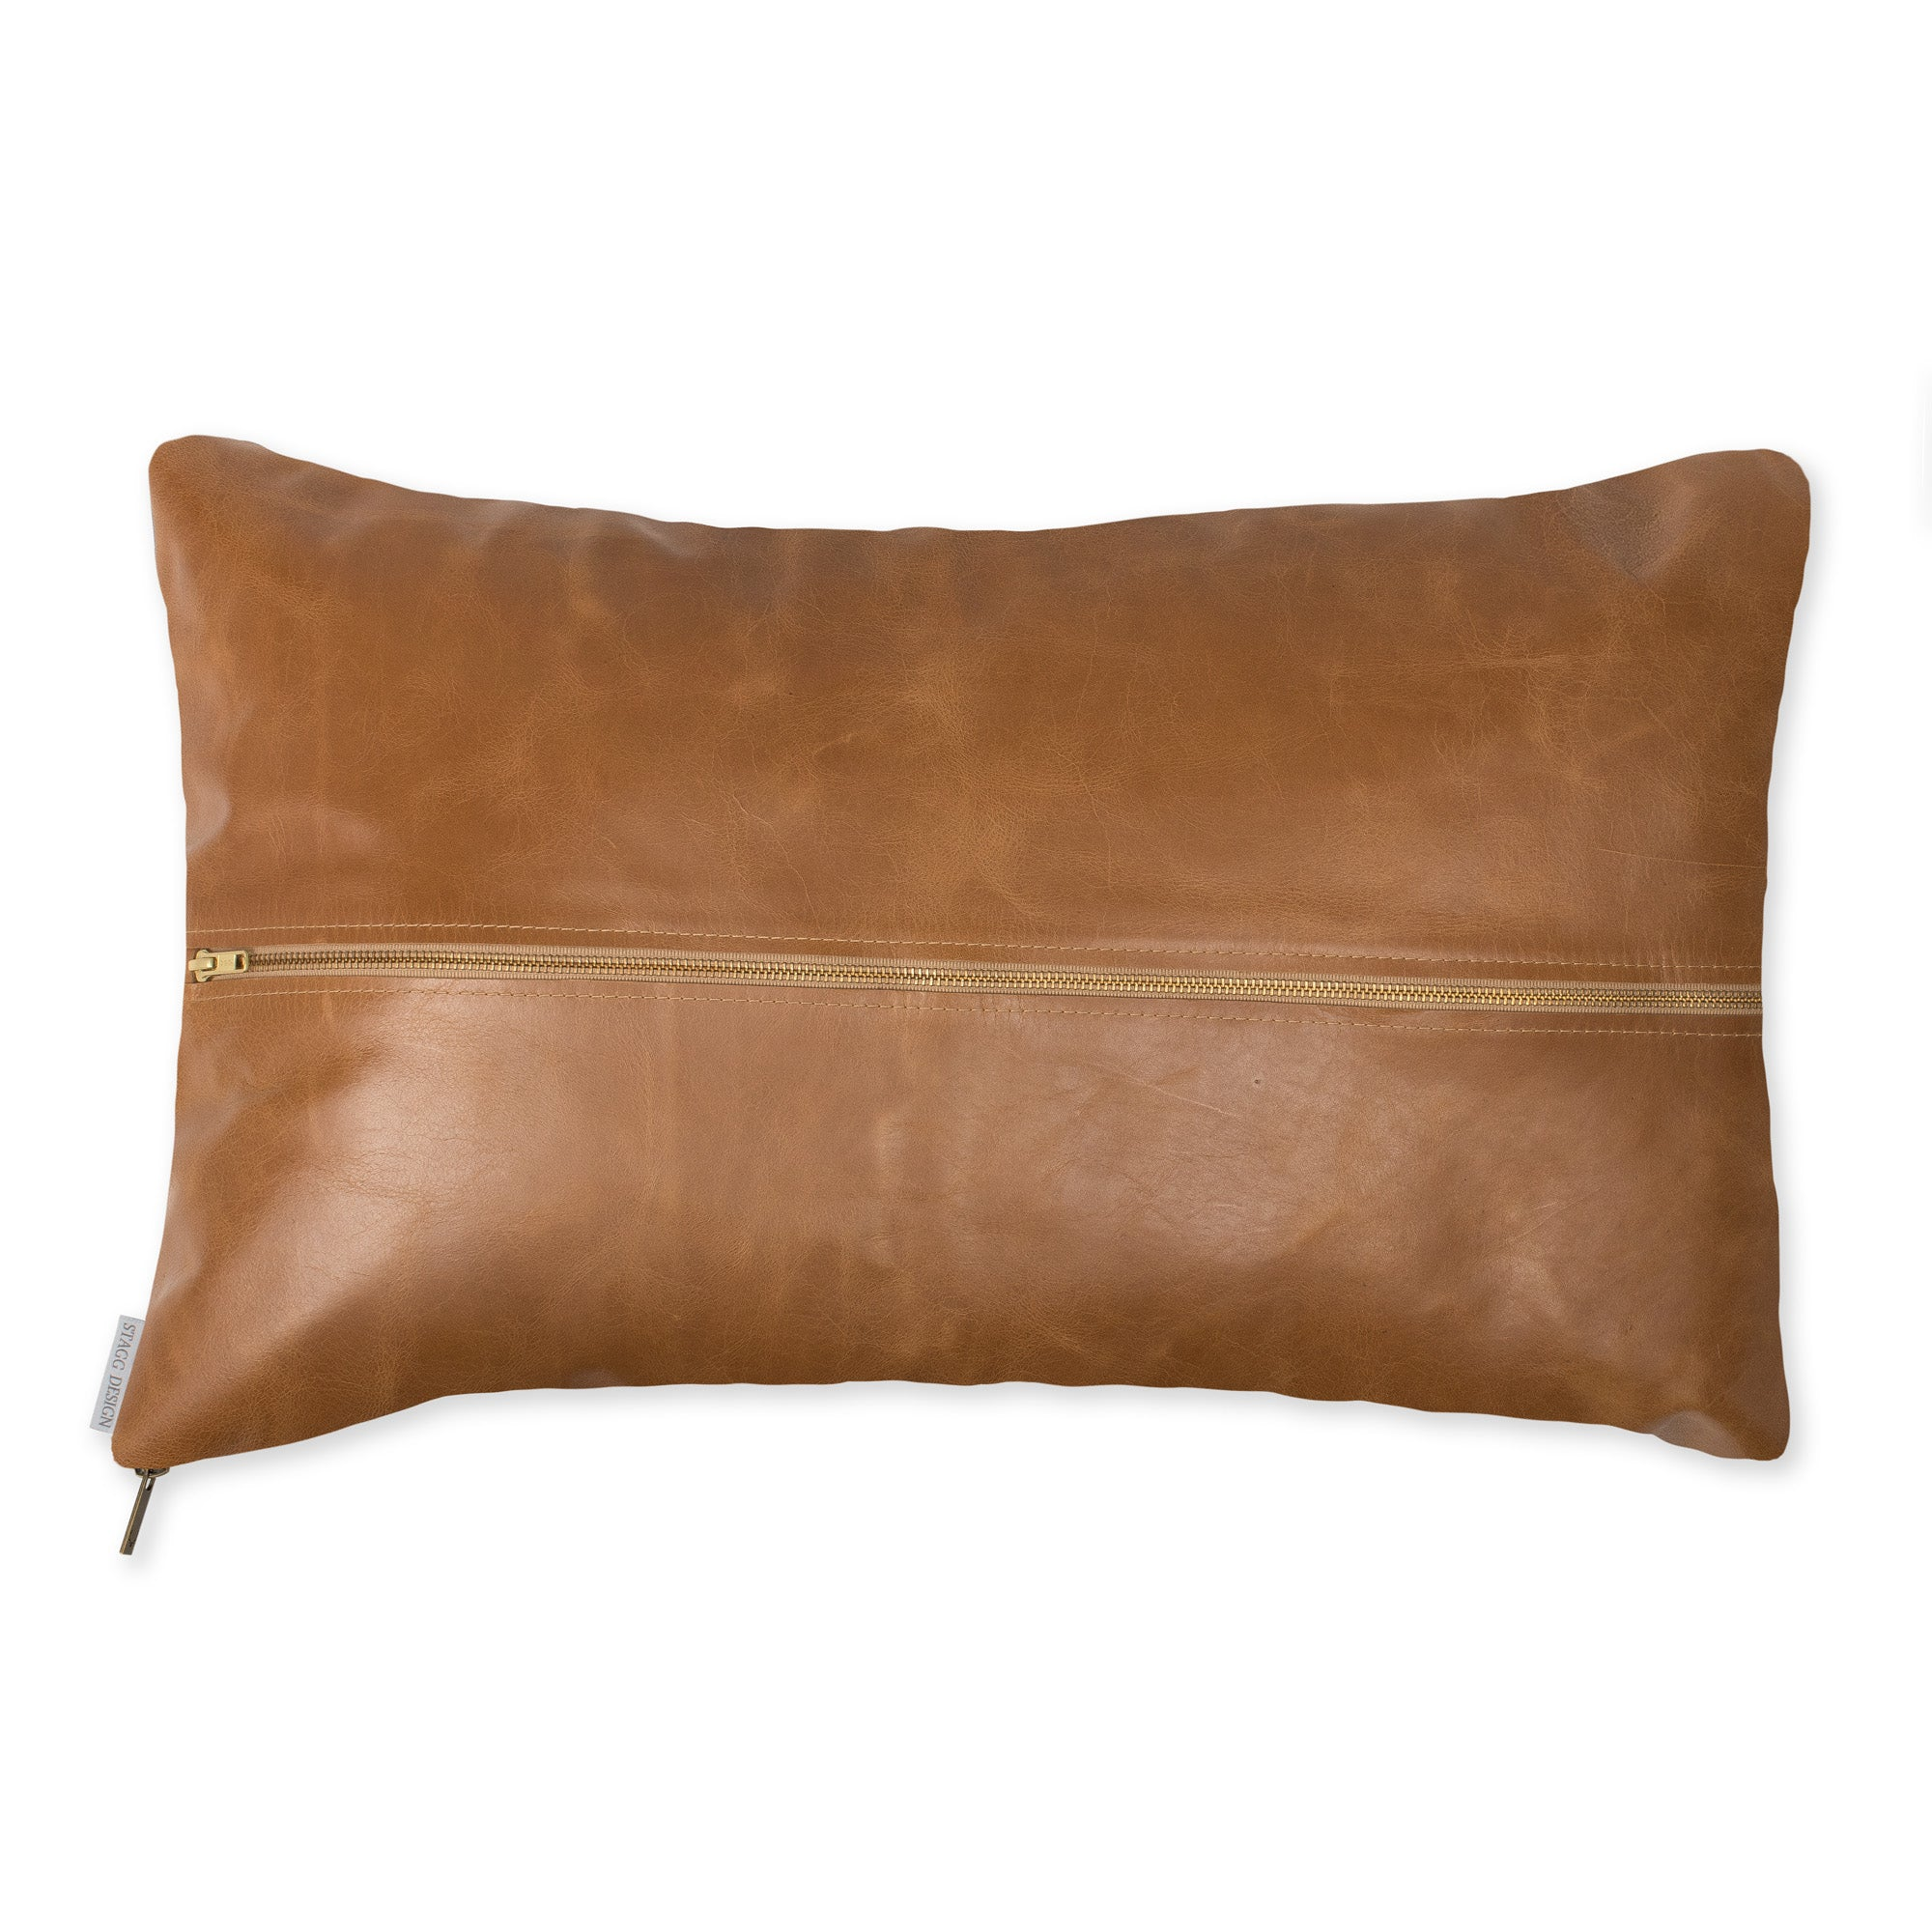 Signature Leather Pillow - Camel